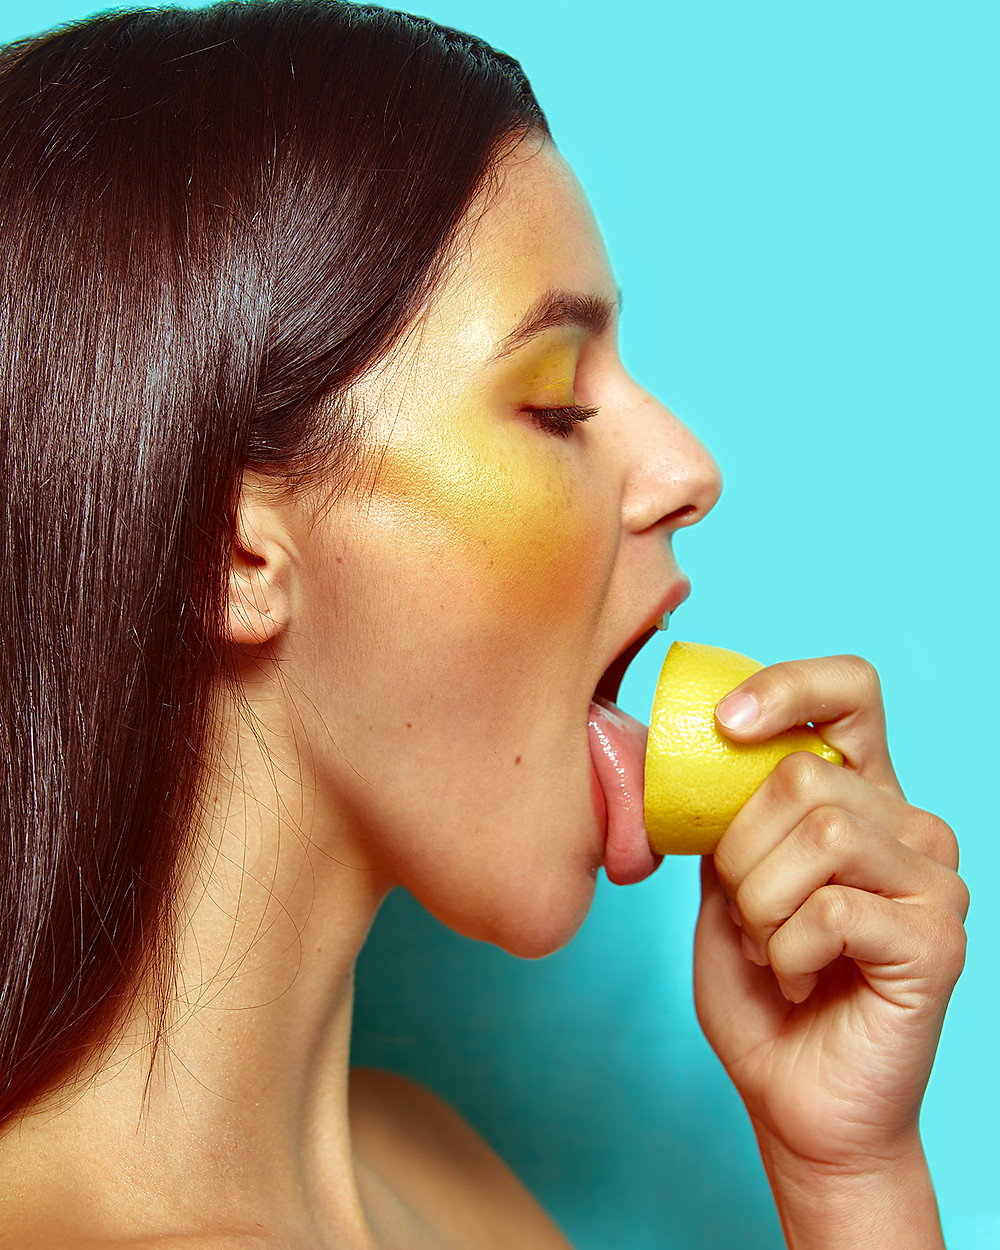 Model Genevieve van Dam licks a lemon in a fruit-inspired beauty editorial photo shoot published in New Face Fashion Magazine and photographed by commercial and fashion photographer Patrick Patton.